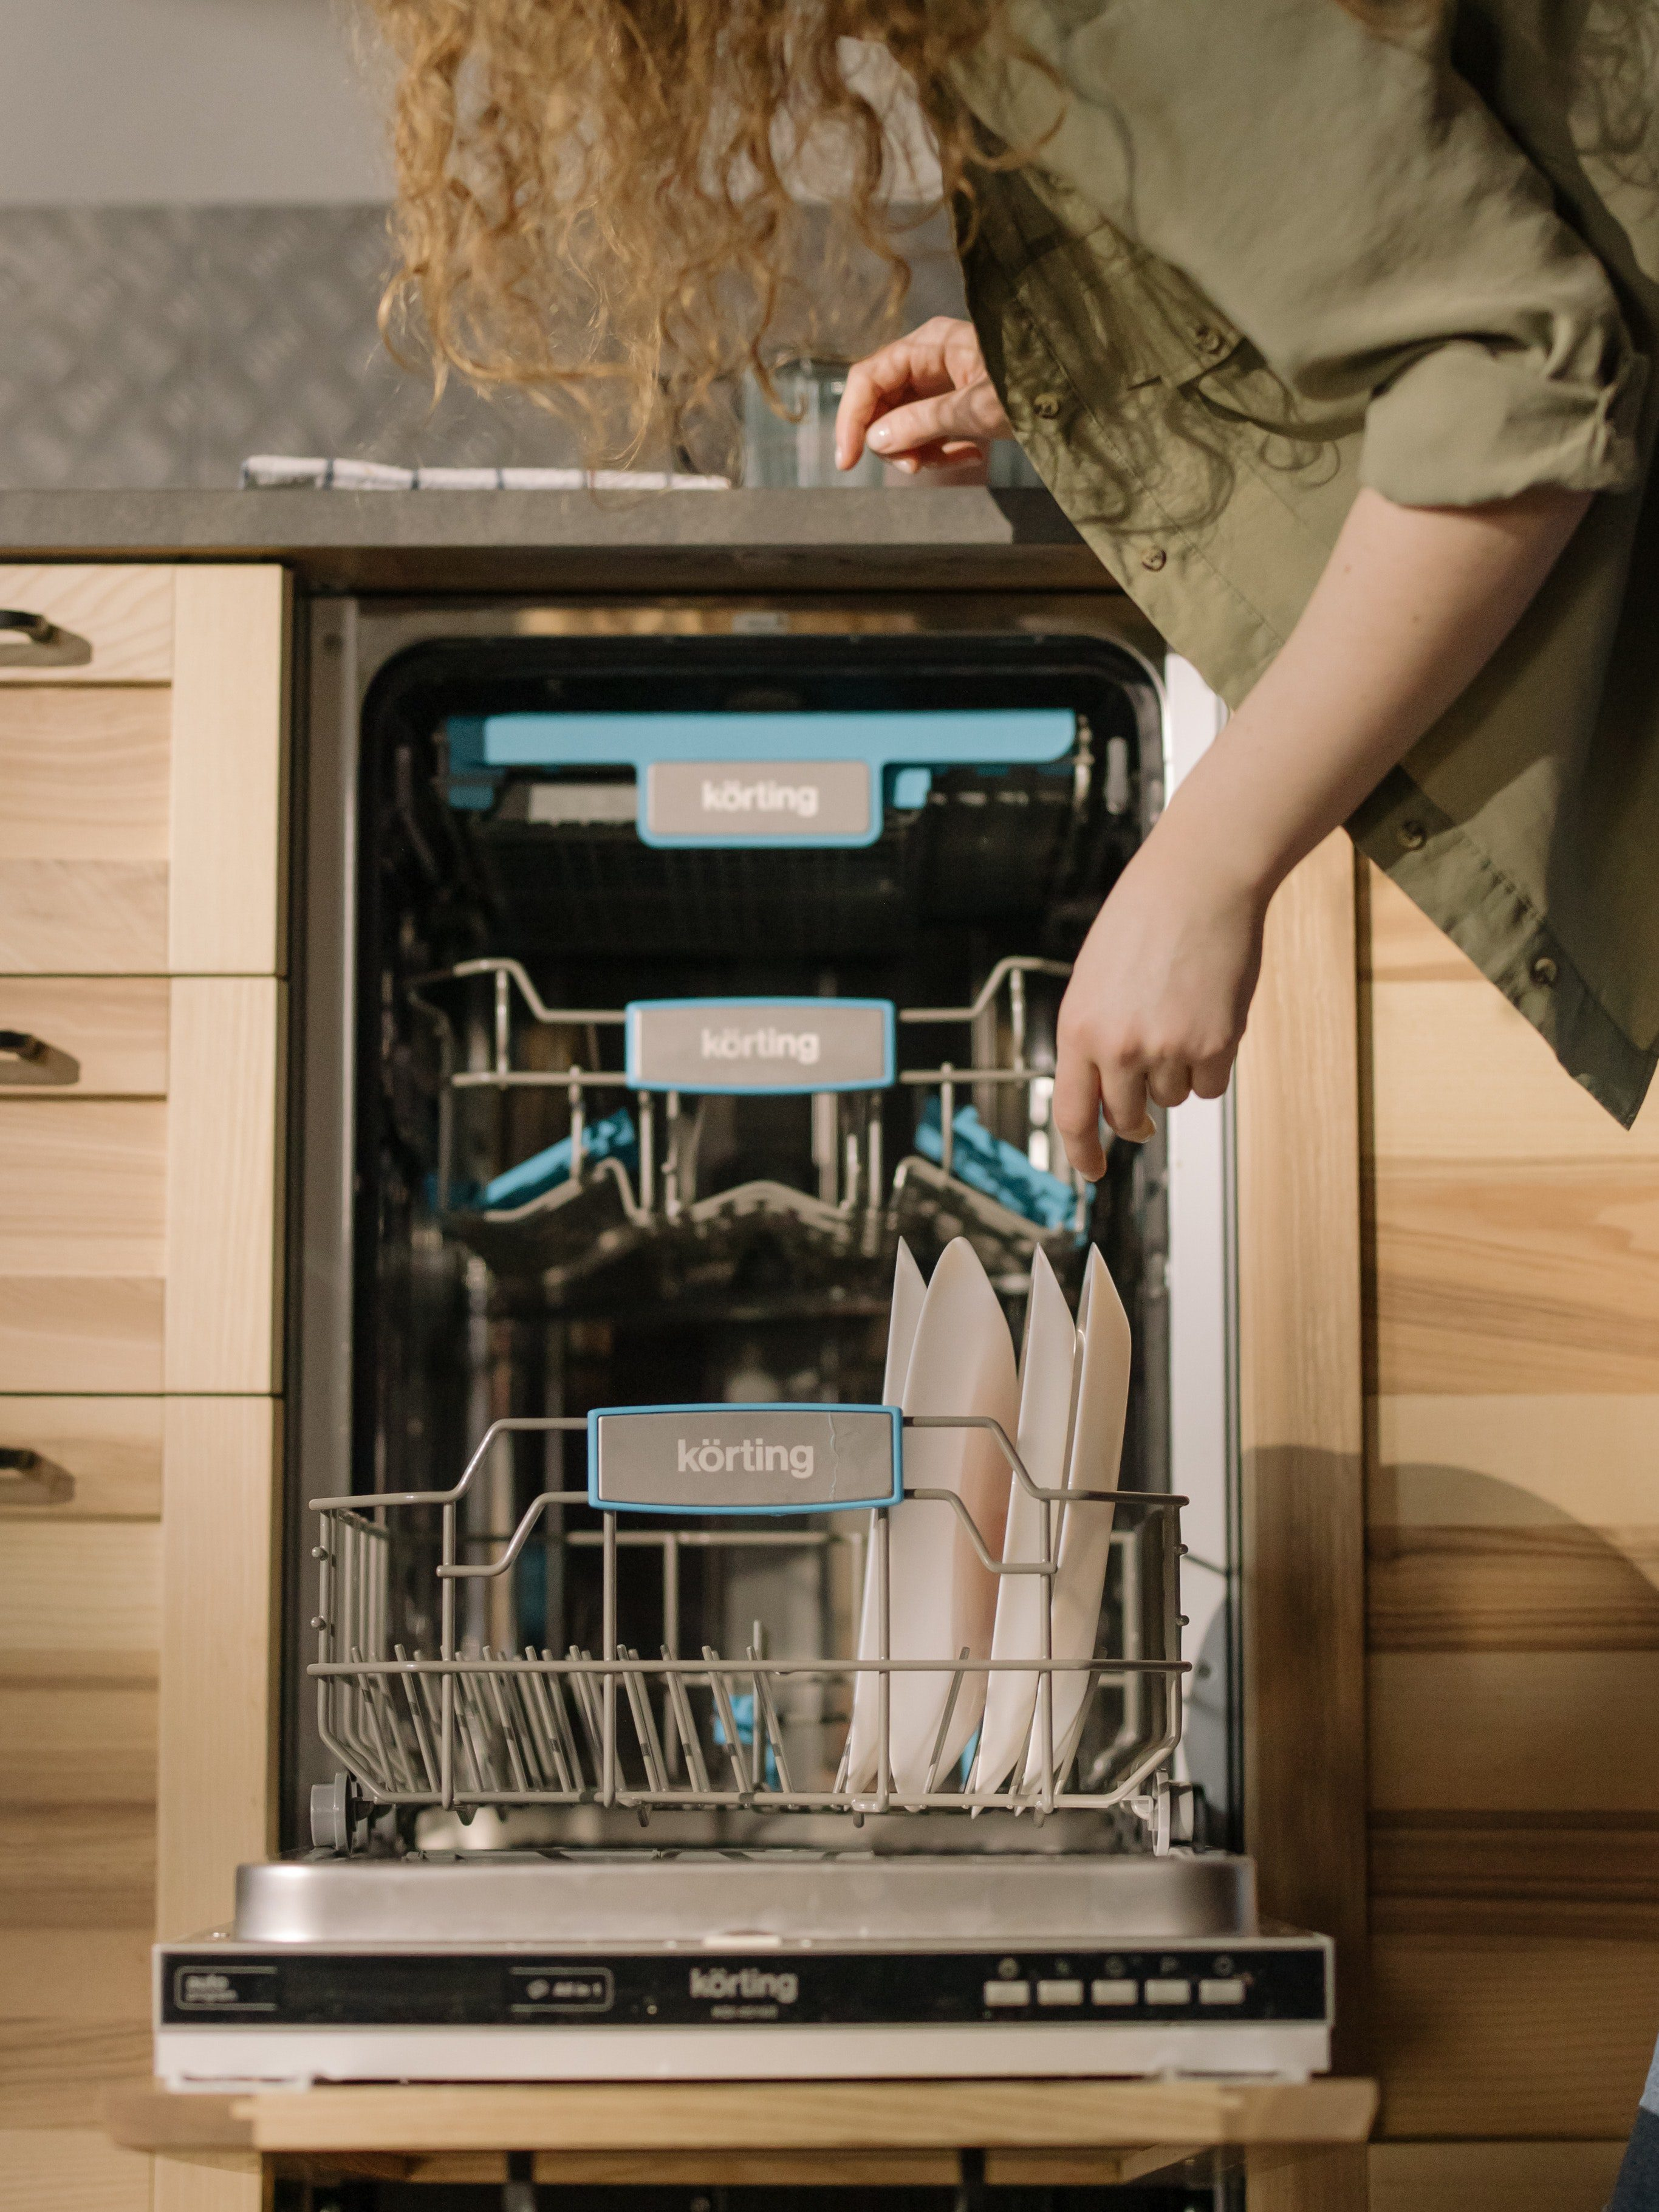 10 Tips to Maintaining a Tidy Kitchen